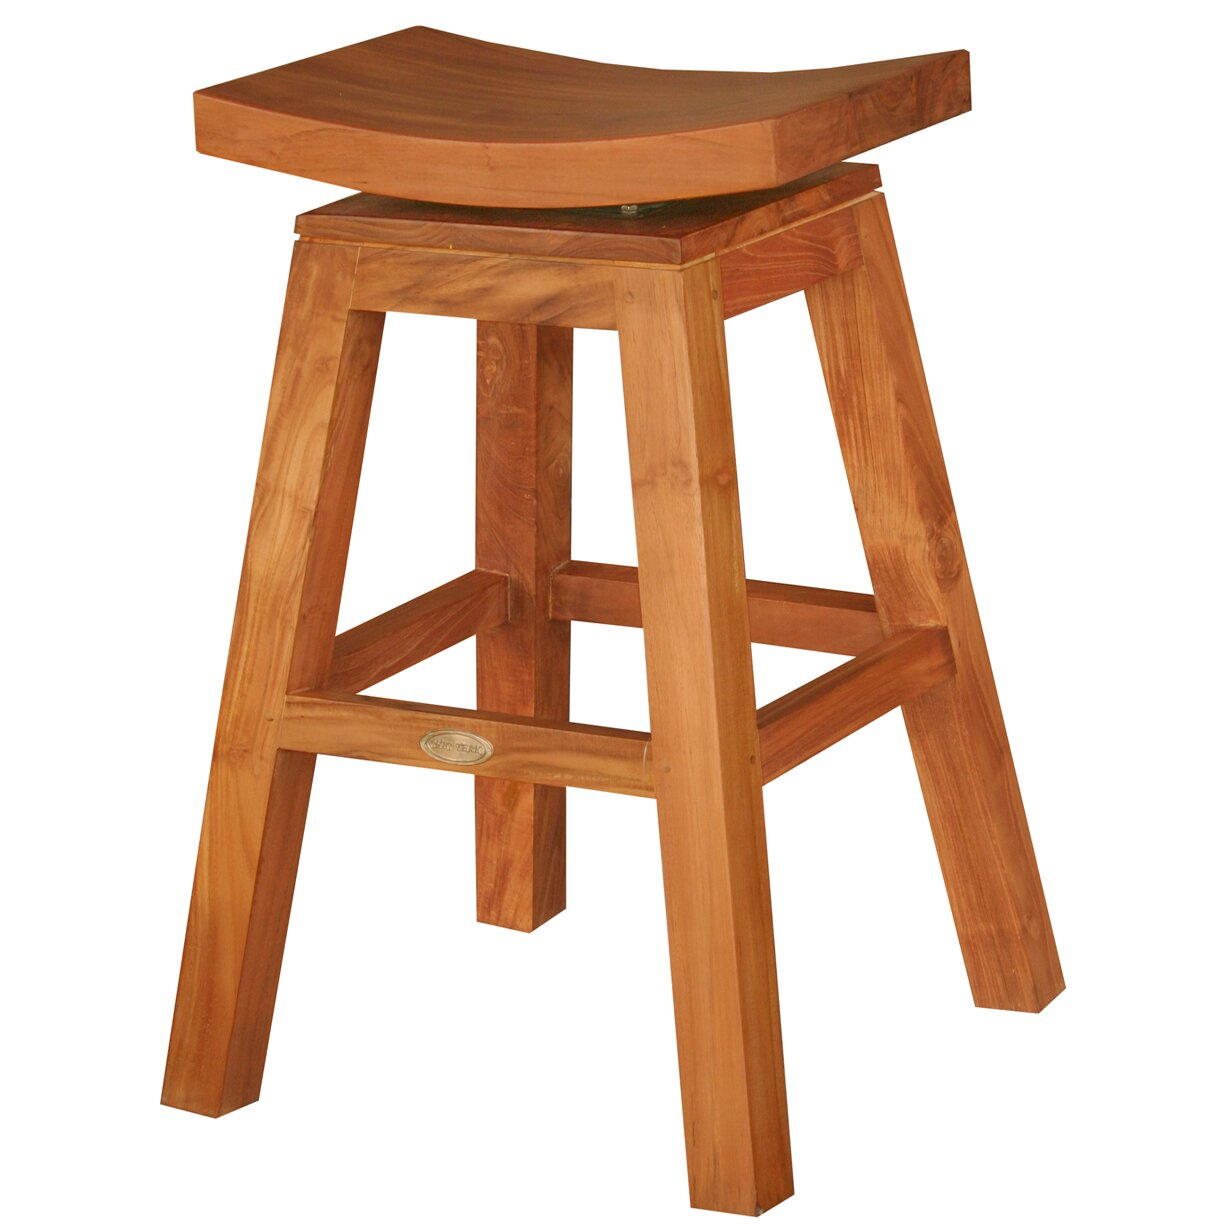 Chicteak 24 Quot Swivel Bar Stool Wayfair